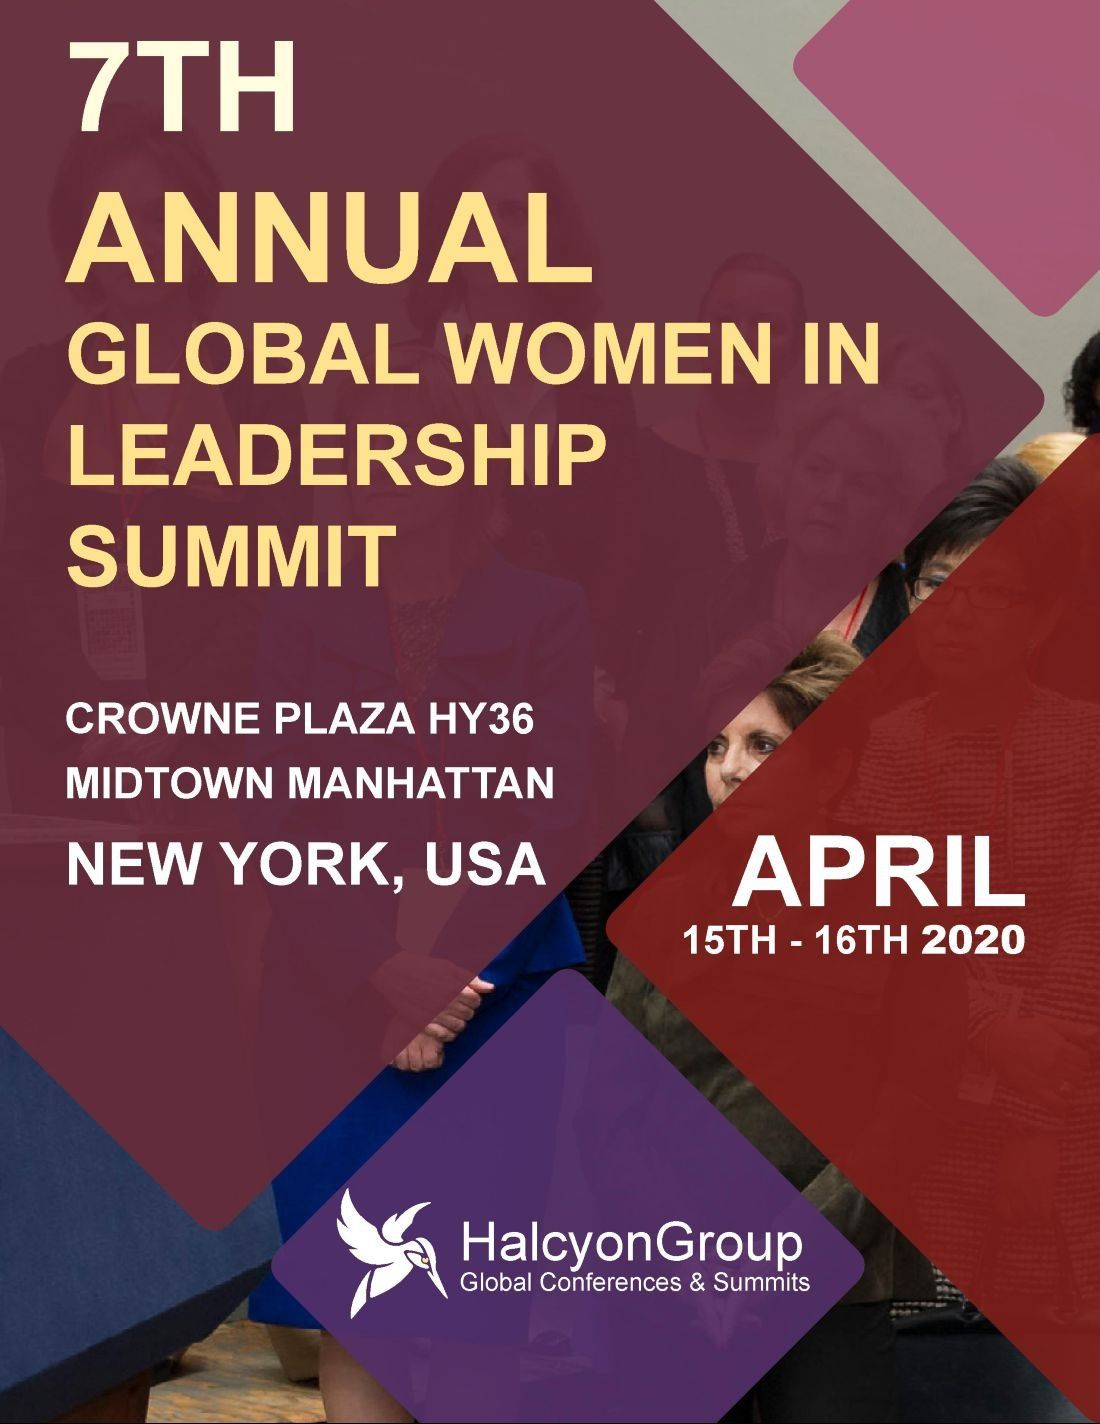 7th Global Women in Leadership Summit April 15th -16th 2020 New YorkCrowne Plaza